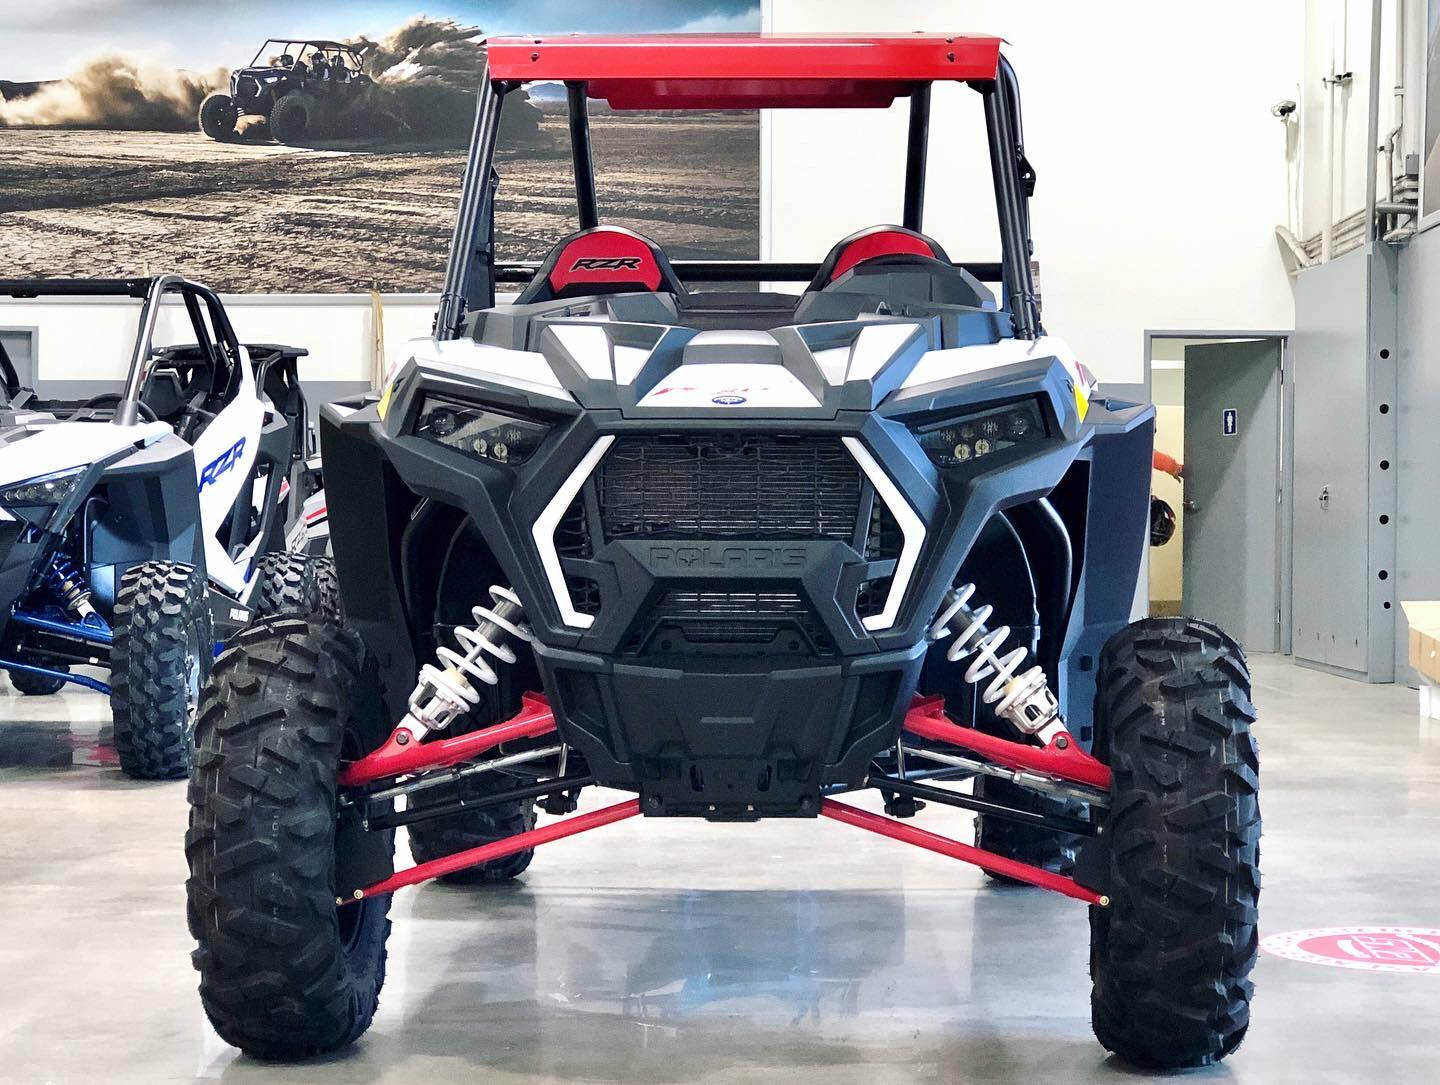 2020 Polaris RZR XP 1000 in Corona, California - Photo 2